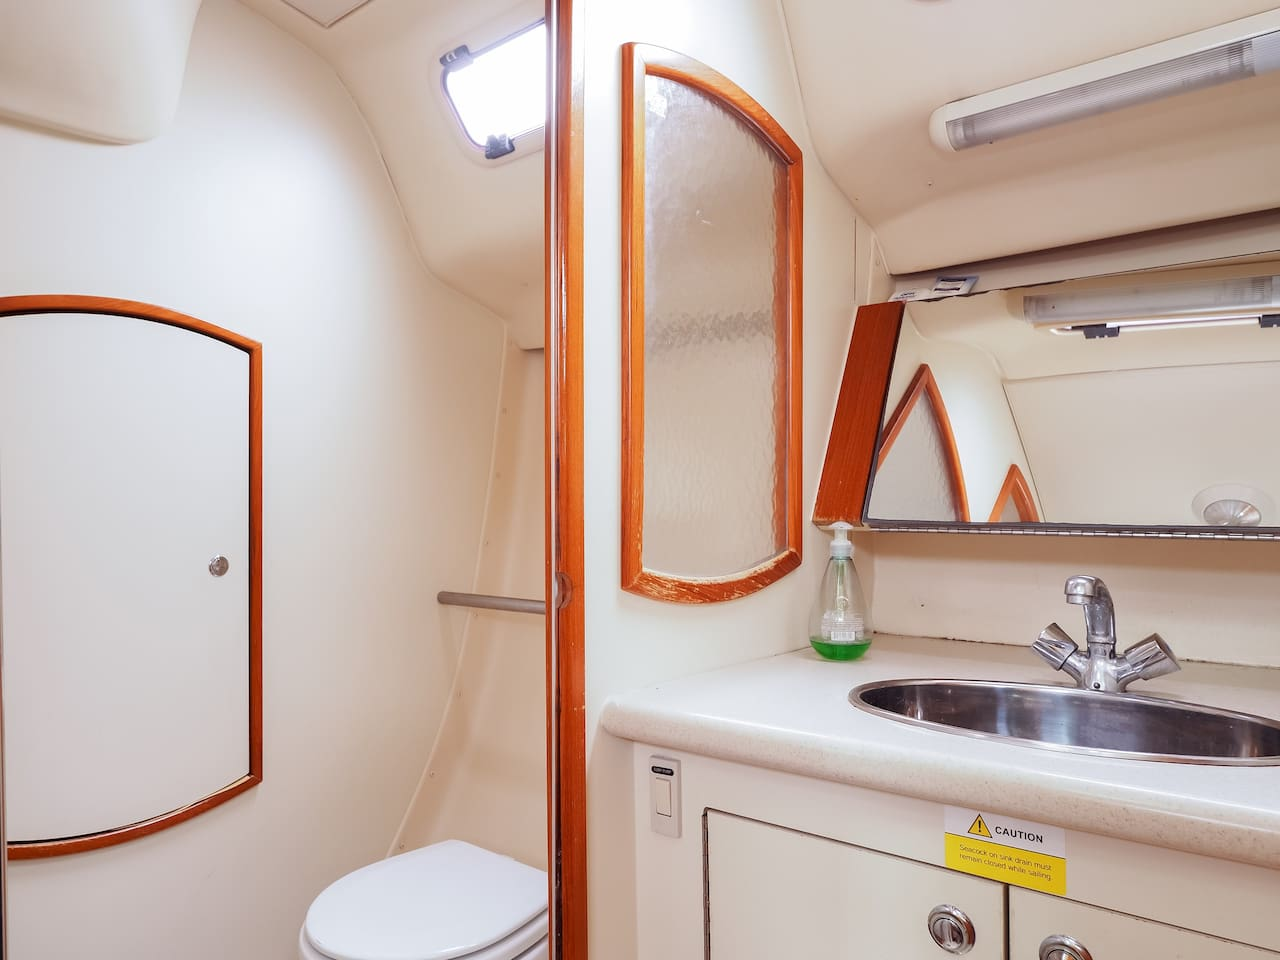 Head (bathroom) with separate washbasin and toilet areas.